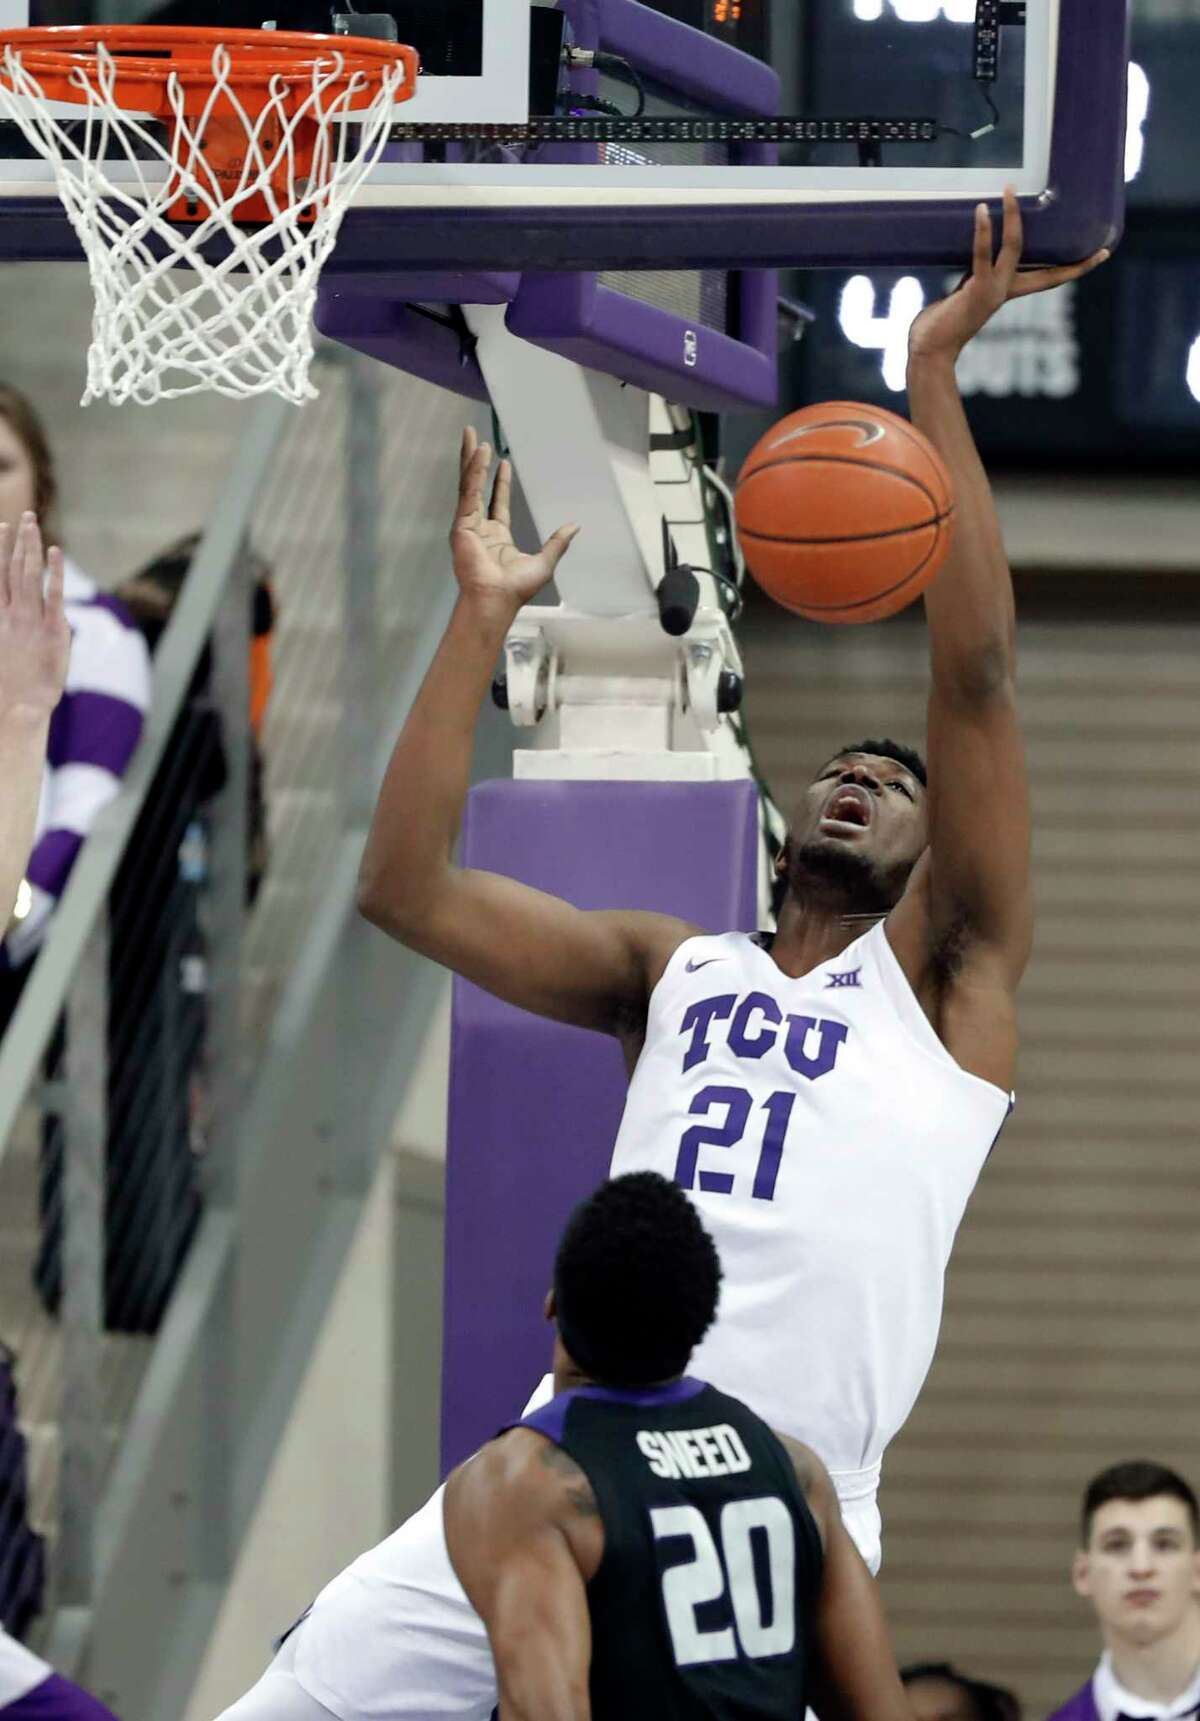 TCU center Kevin Samuel (21) loses control of the ball while shooting against Kansas State forward Xavier Sneed (20) in the first half of an NCAA college basketball game in Fort Worth, Texas, Monday, March 4, 2019.